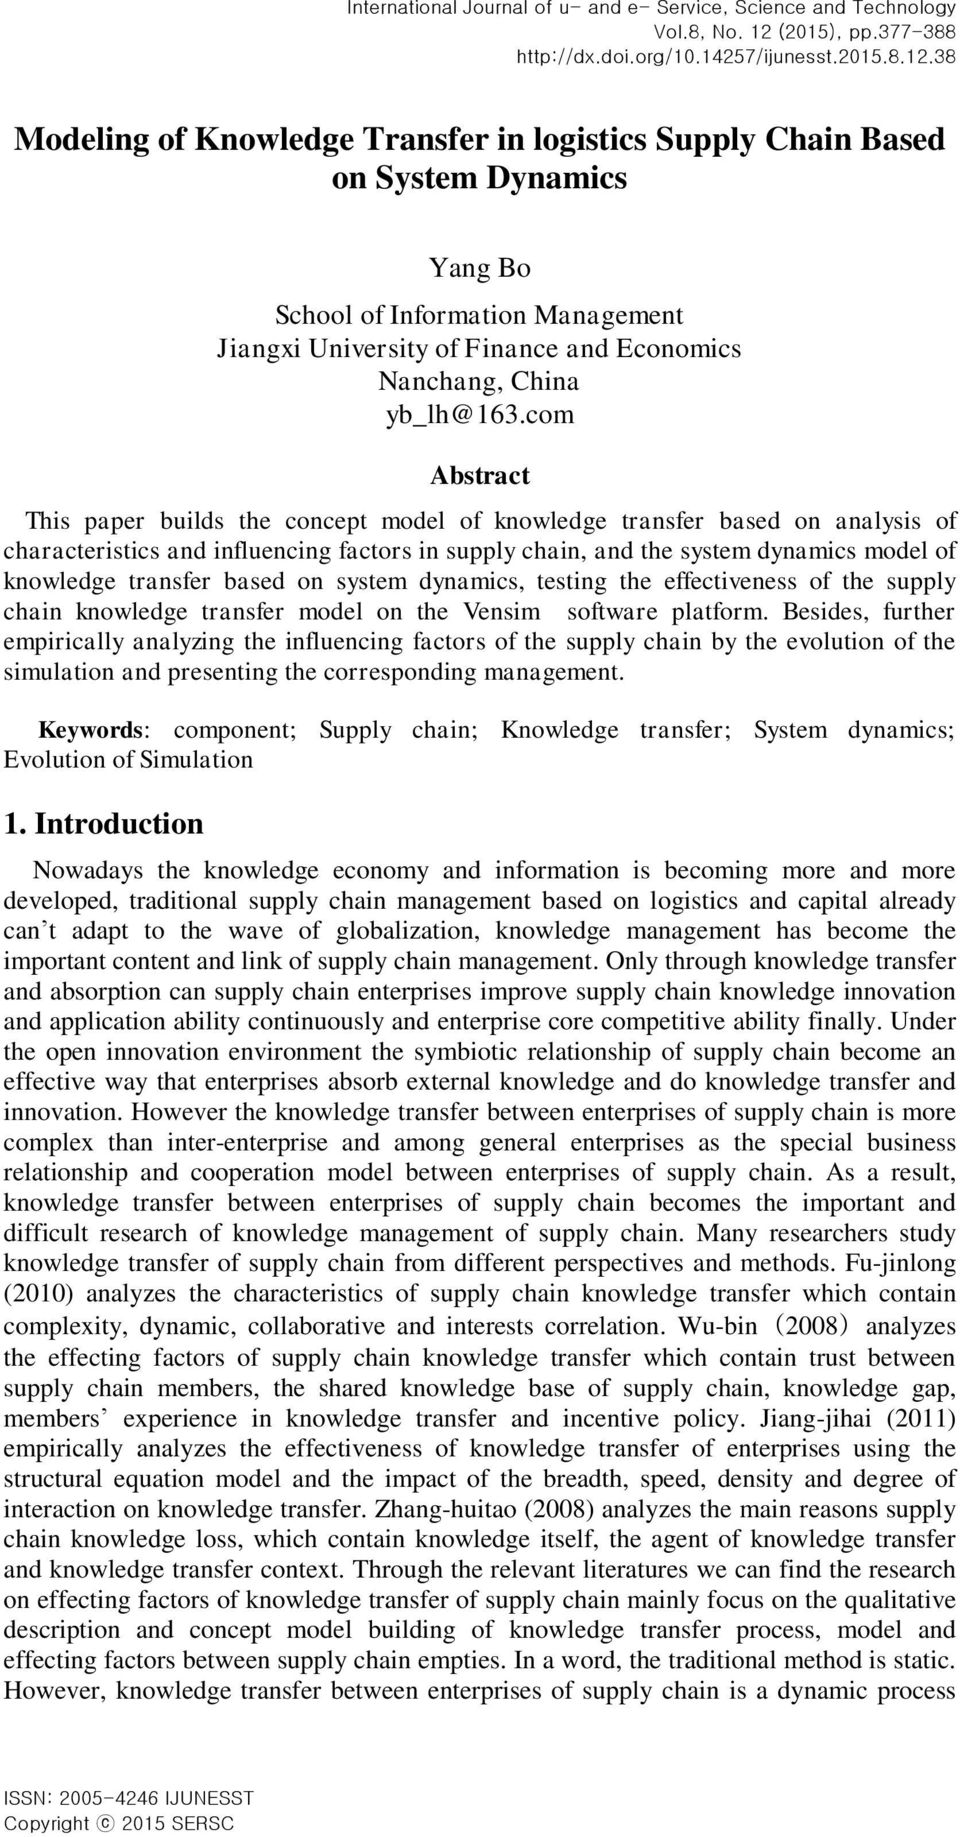 com Abstract This paper builds the concept model of knowledge transfer based on analysis of characteristics and influencing factors in supply chain, and the system dynamics model of knowledge